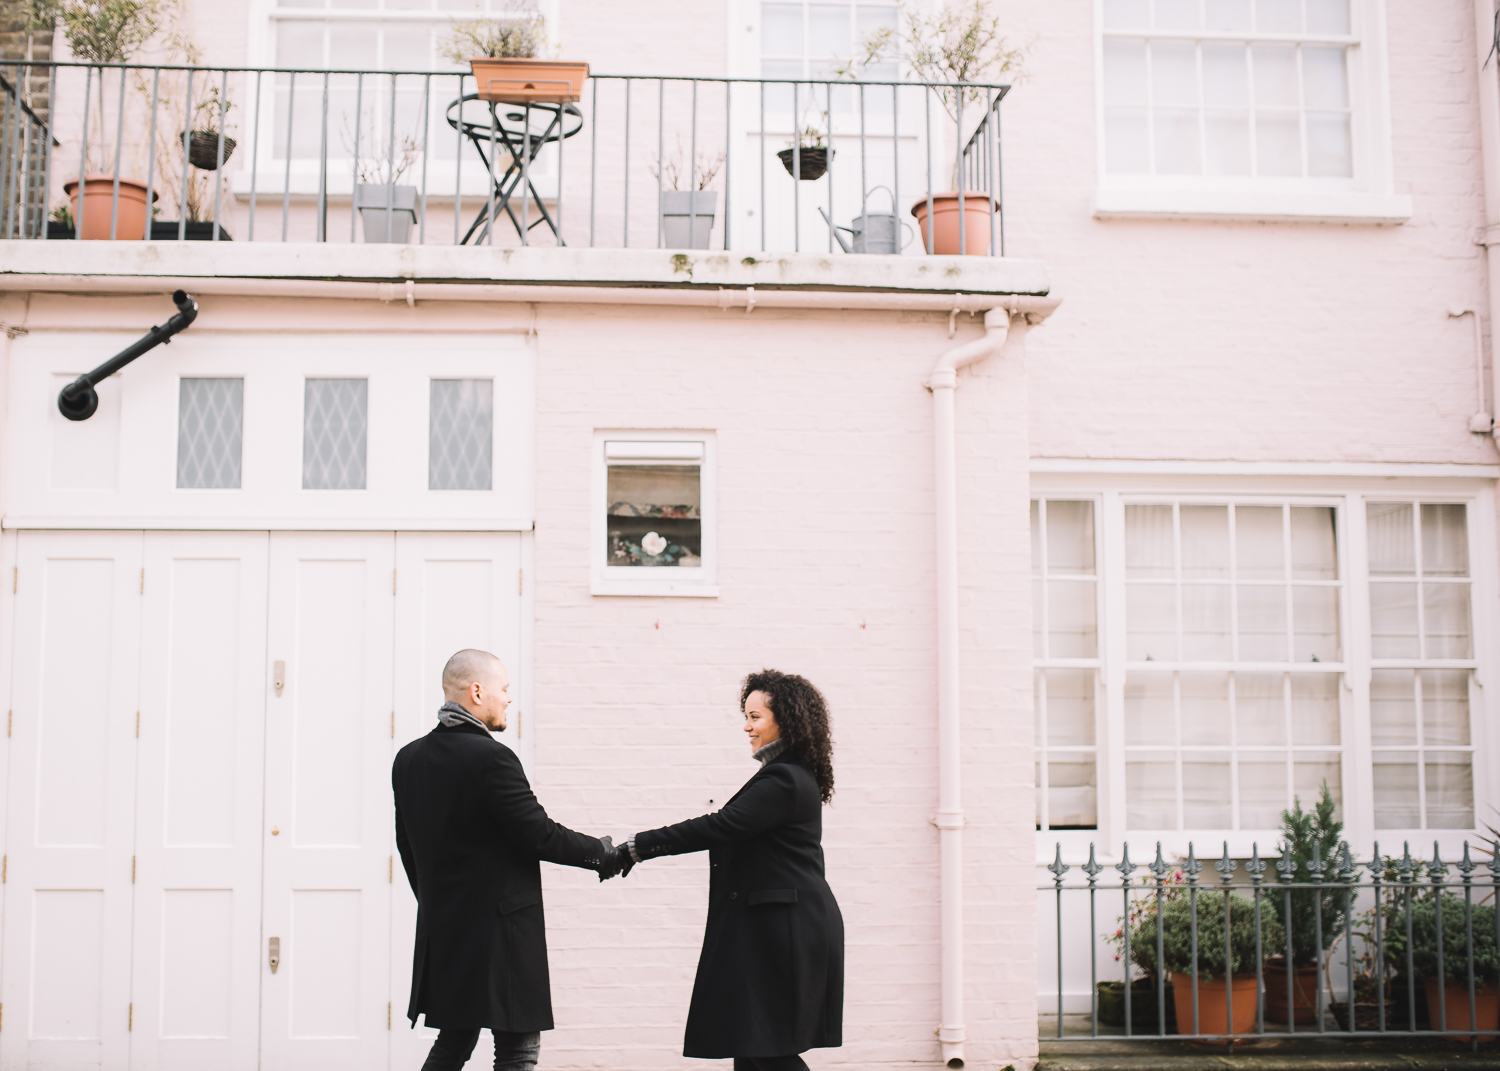 Holland Park engagement shoot, Lucie Watson Photography, London engagement photos